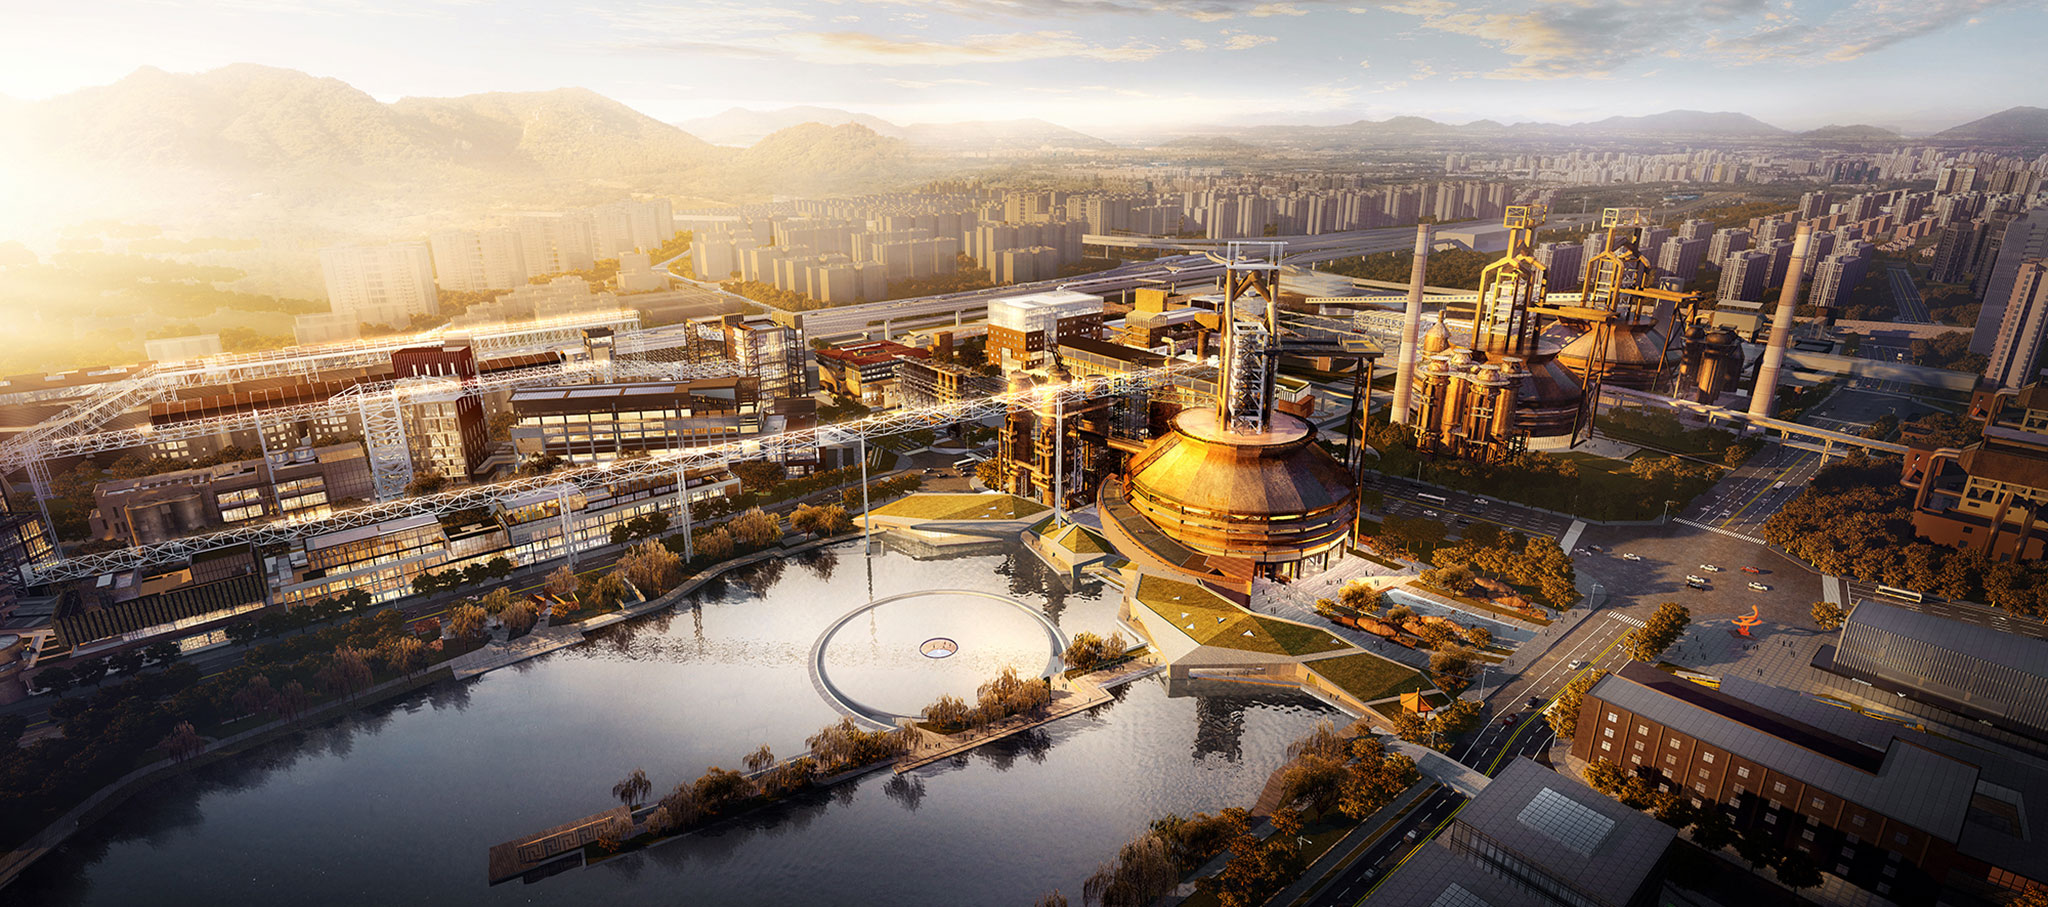 No.3 blast furnaces -bird's eye view, rendering. Shougang Museum Regeneration Design by CCTN Architectural Design. Courtesy of CCTN Architectural Design